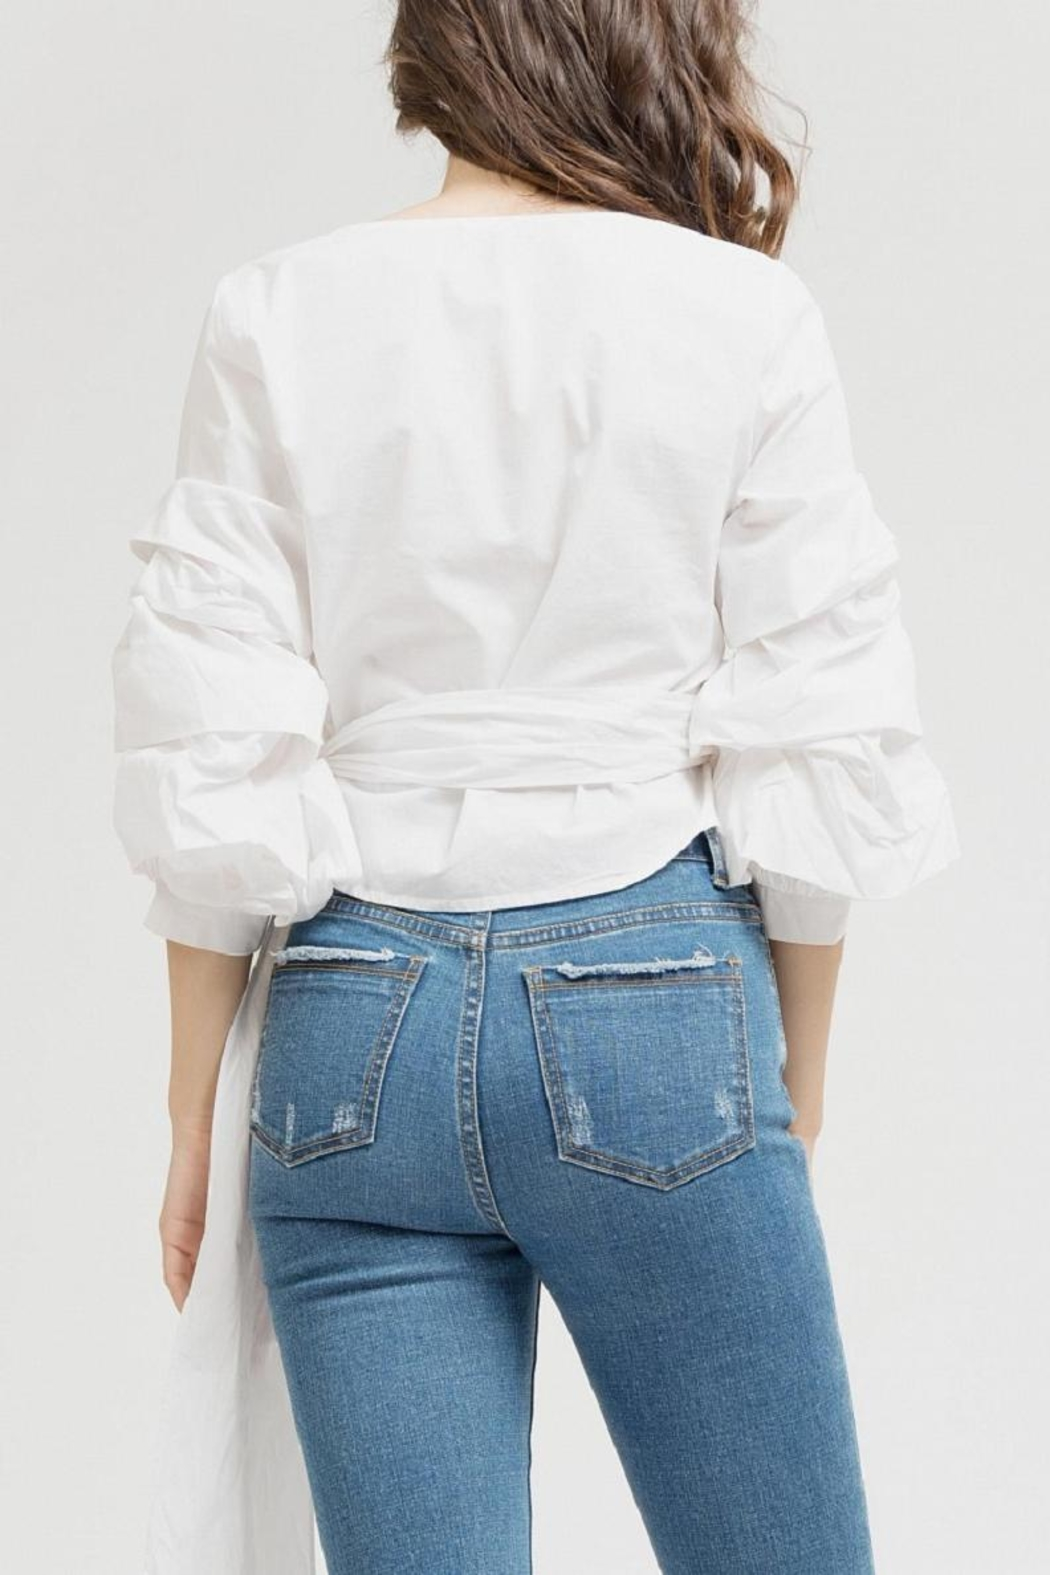 Blu Pepper White Wrap Top - Side Cropped Image